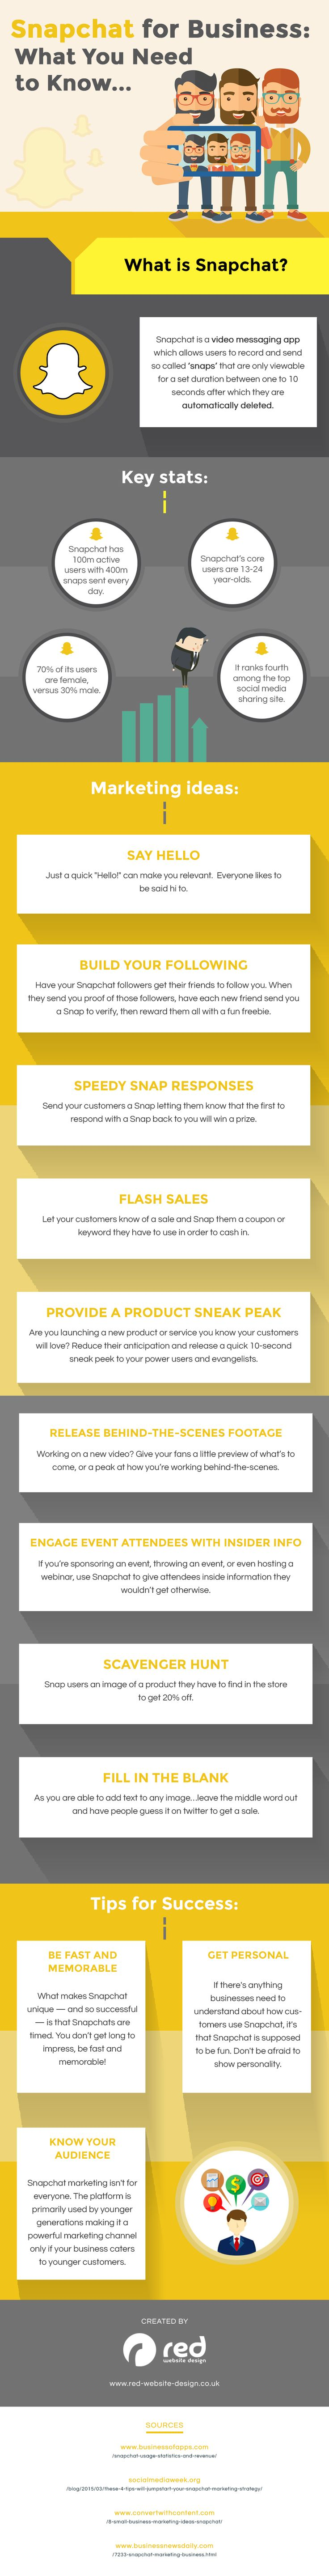 Snapchat Marketing for Business: What You Need to Know